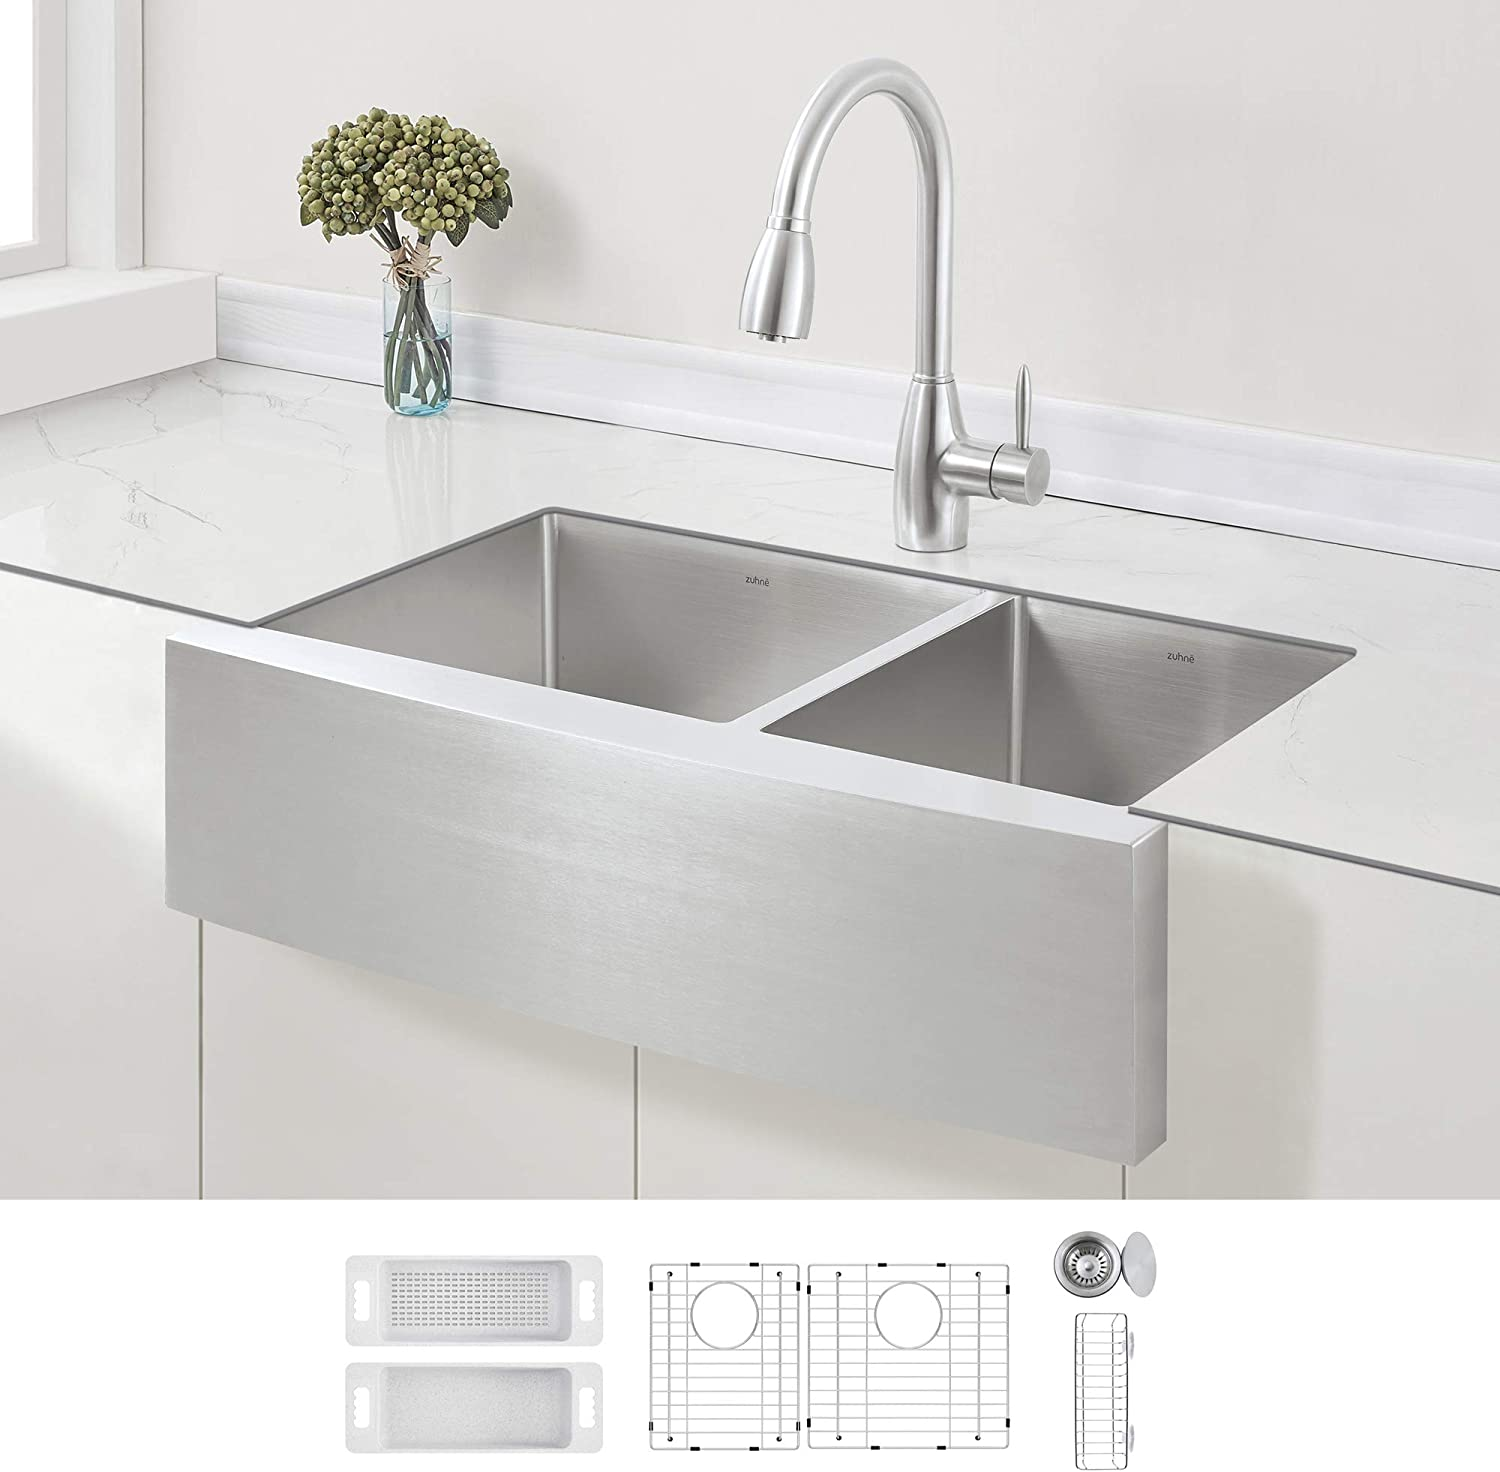 ZUHNE Stainless Steel Double Basin Farmhouse Sink 60/40